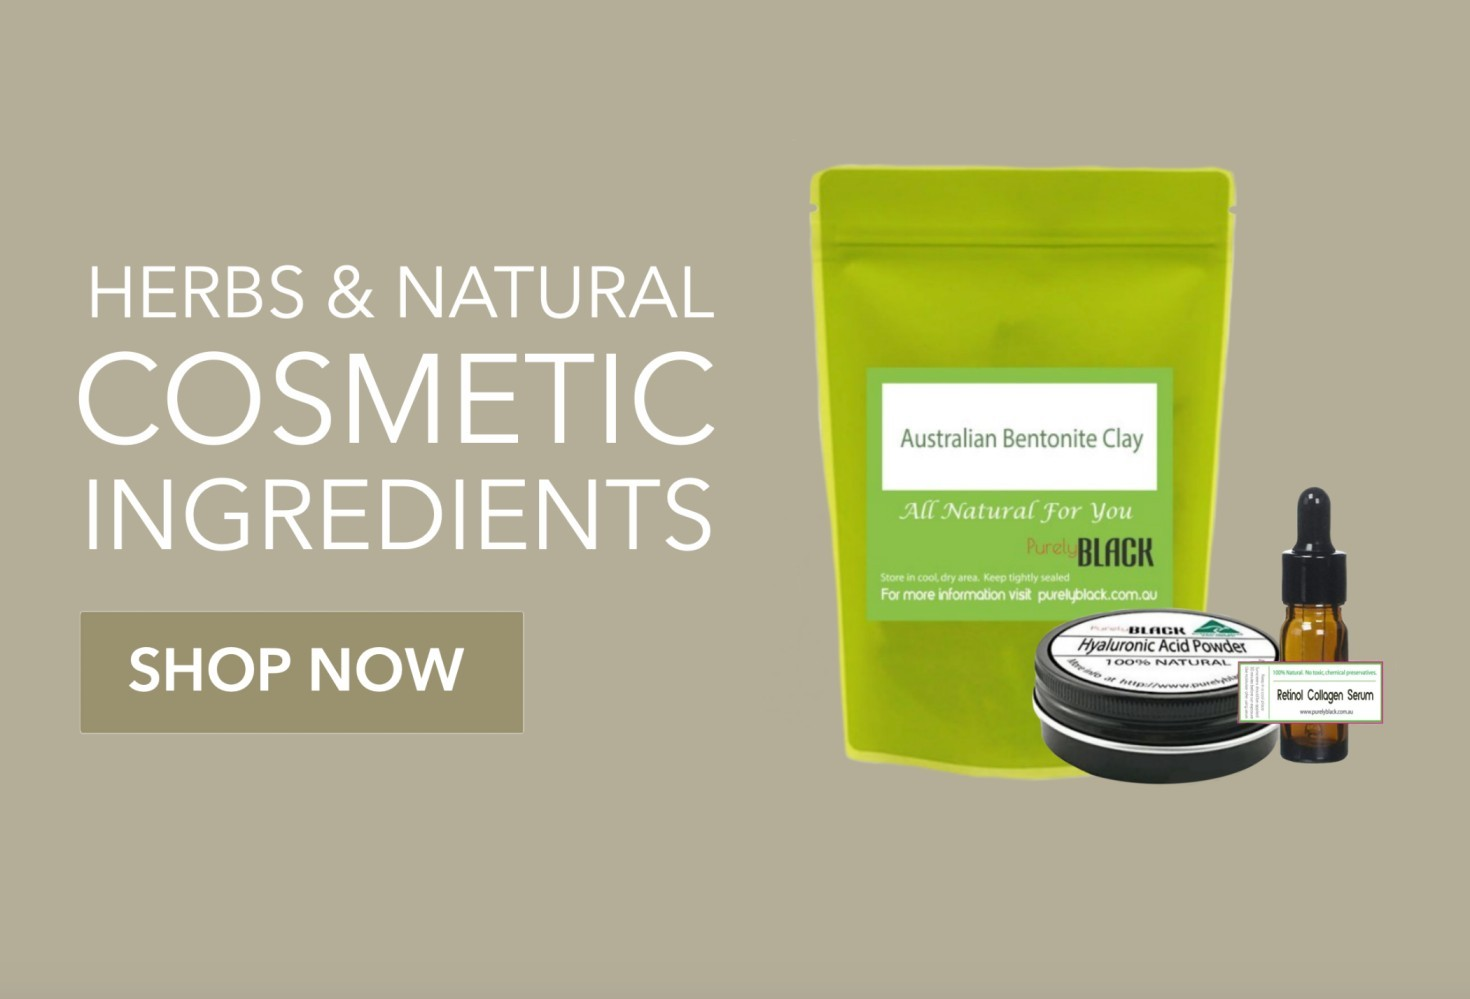 Herbs and Natural Cosmetic Ingredients